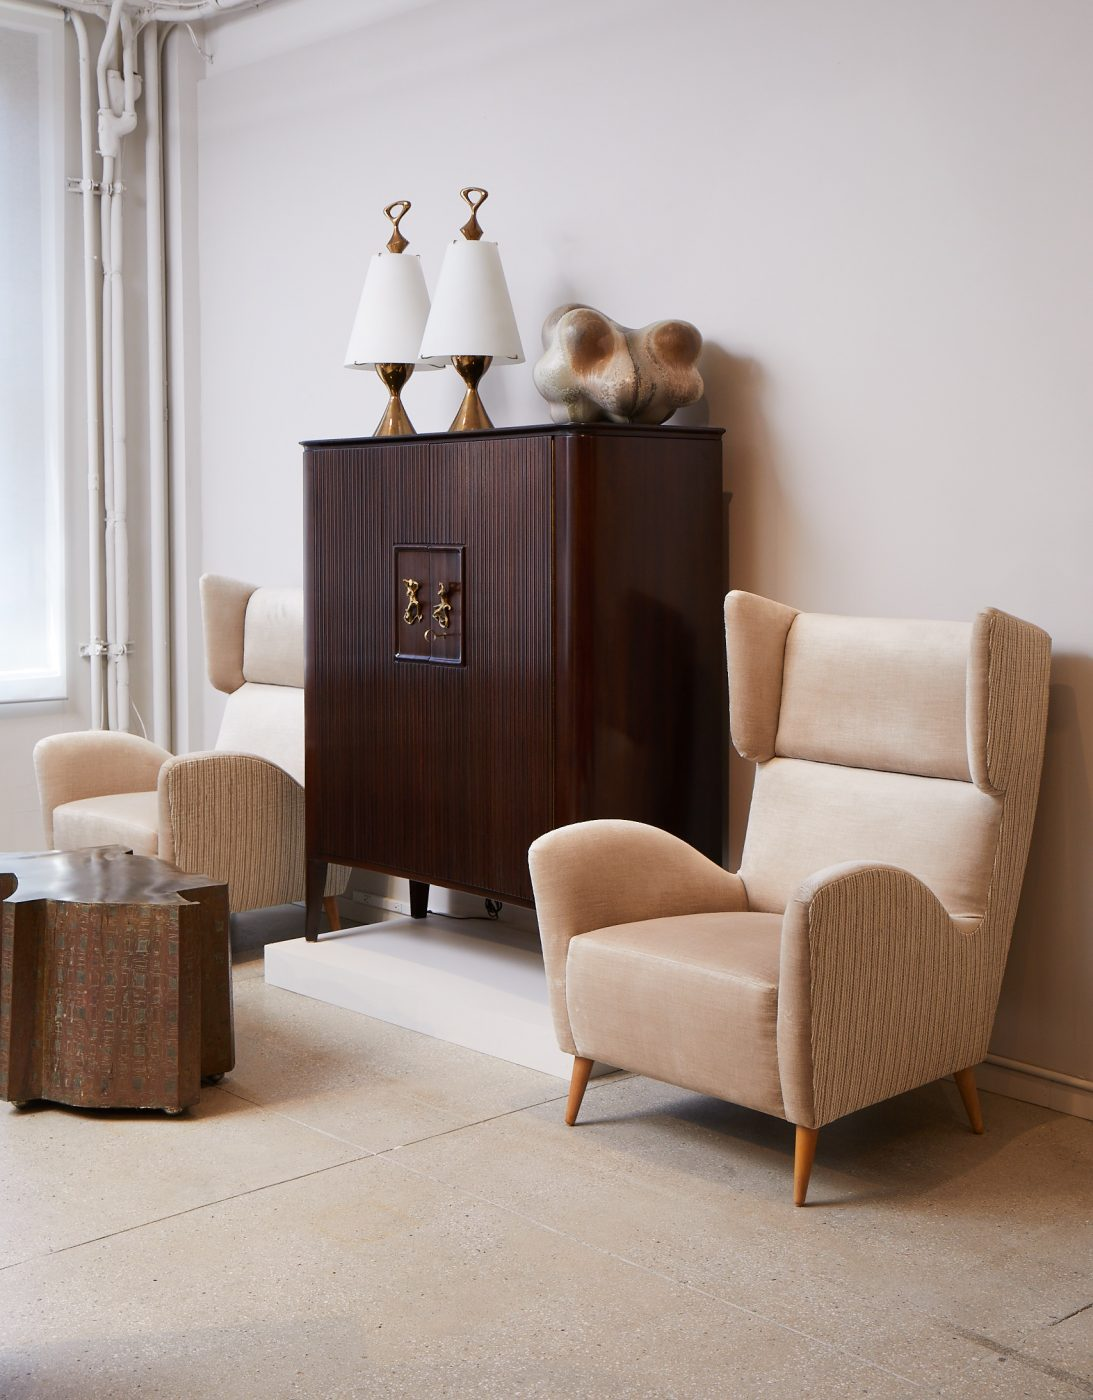 Matching arm chairs next to a wooden console